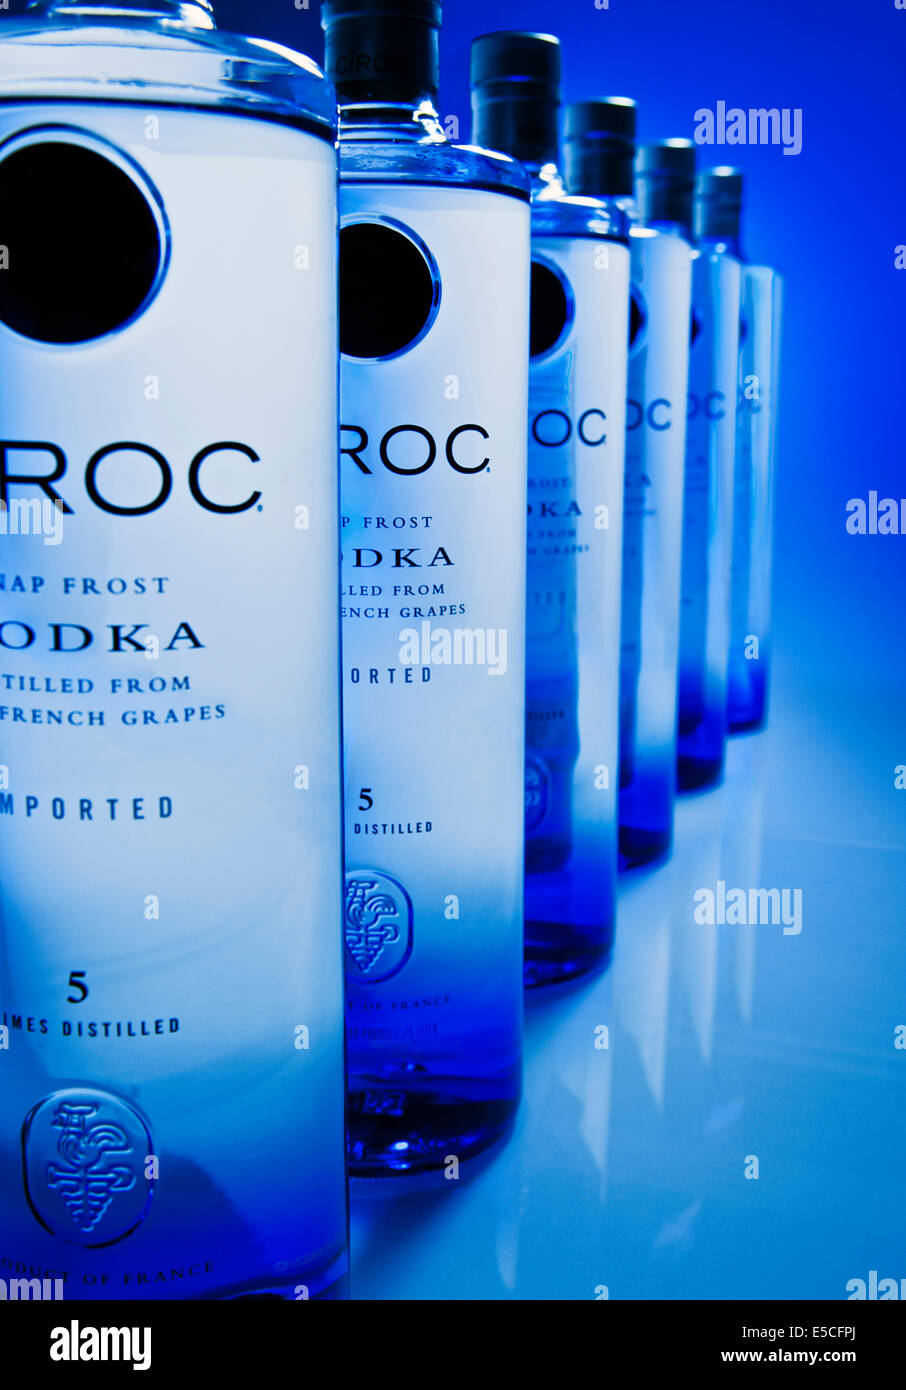 Ciroc Vodka bottles line up in perspective with a blue background - Stock Image